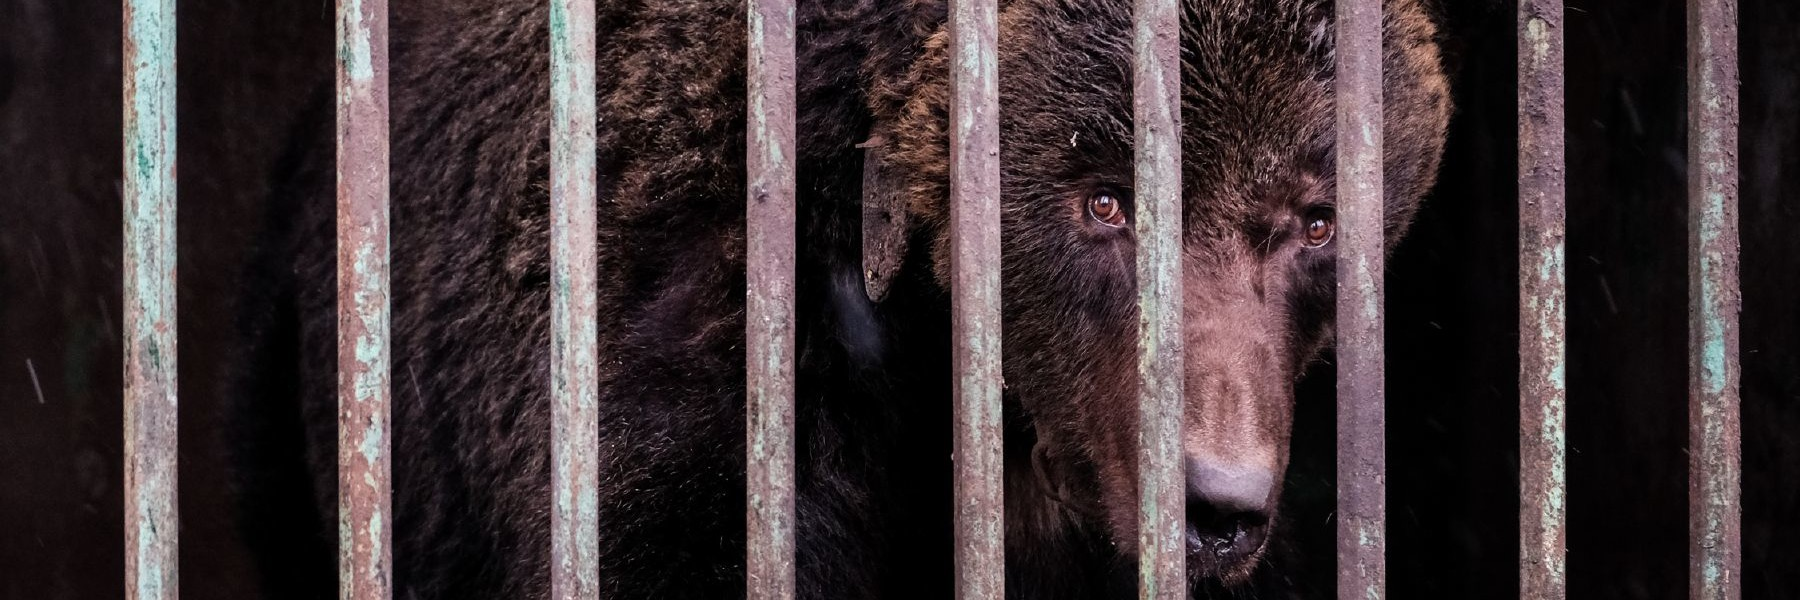 Bears in Ukraine